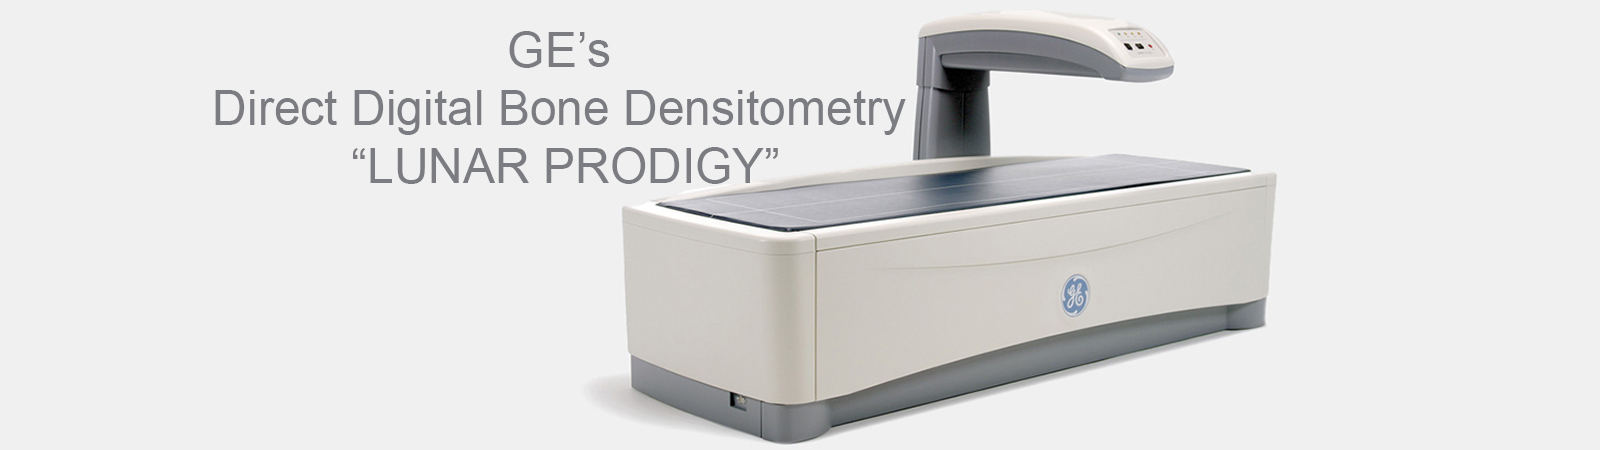 "Refurbished GE's Diret Digital Bone Densitometry ""LUNAR PRODIGY"""